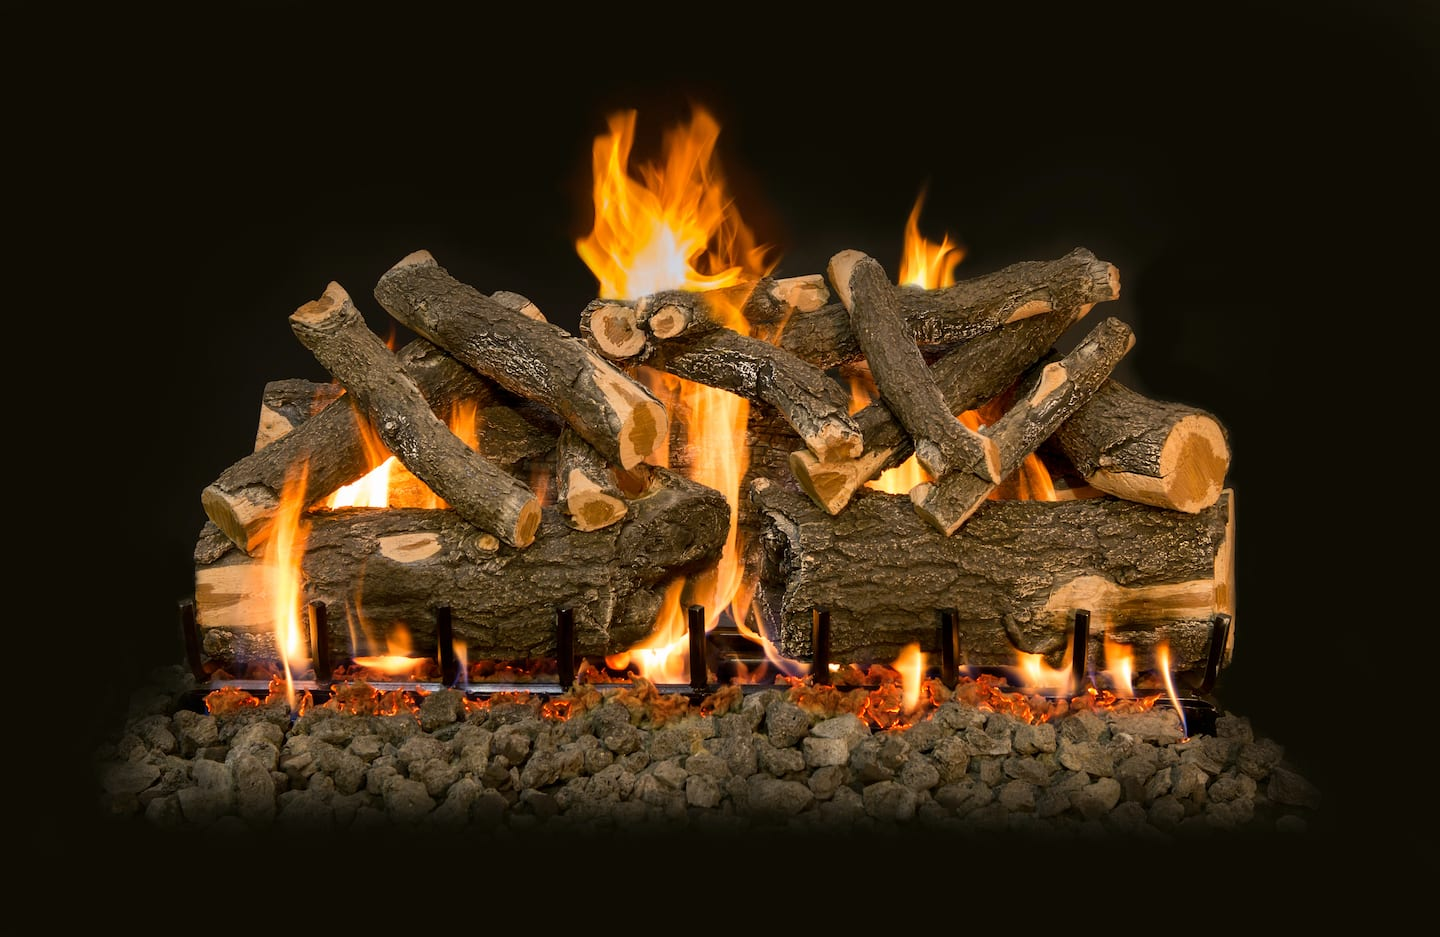 Join for FREE to read real reviews and see ratings for Seattle Gas Fireplace Repair Services near you to help pick the right pro Gas Fireplace Service.